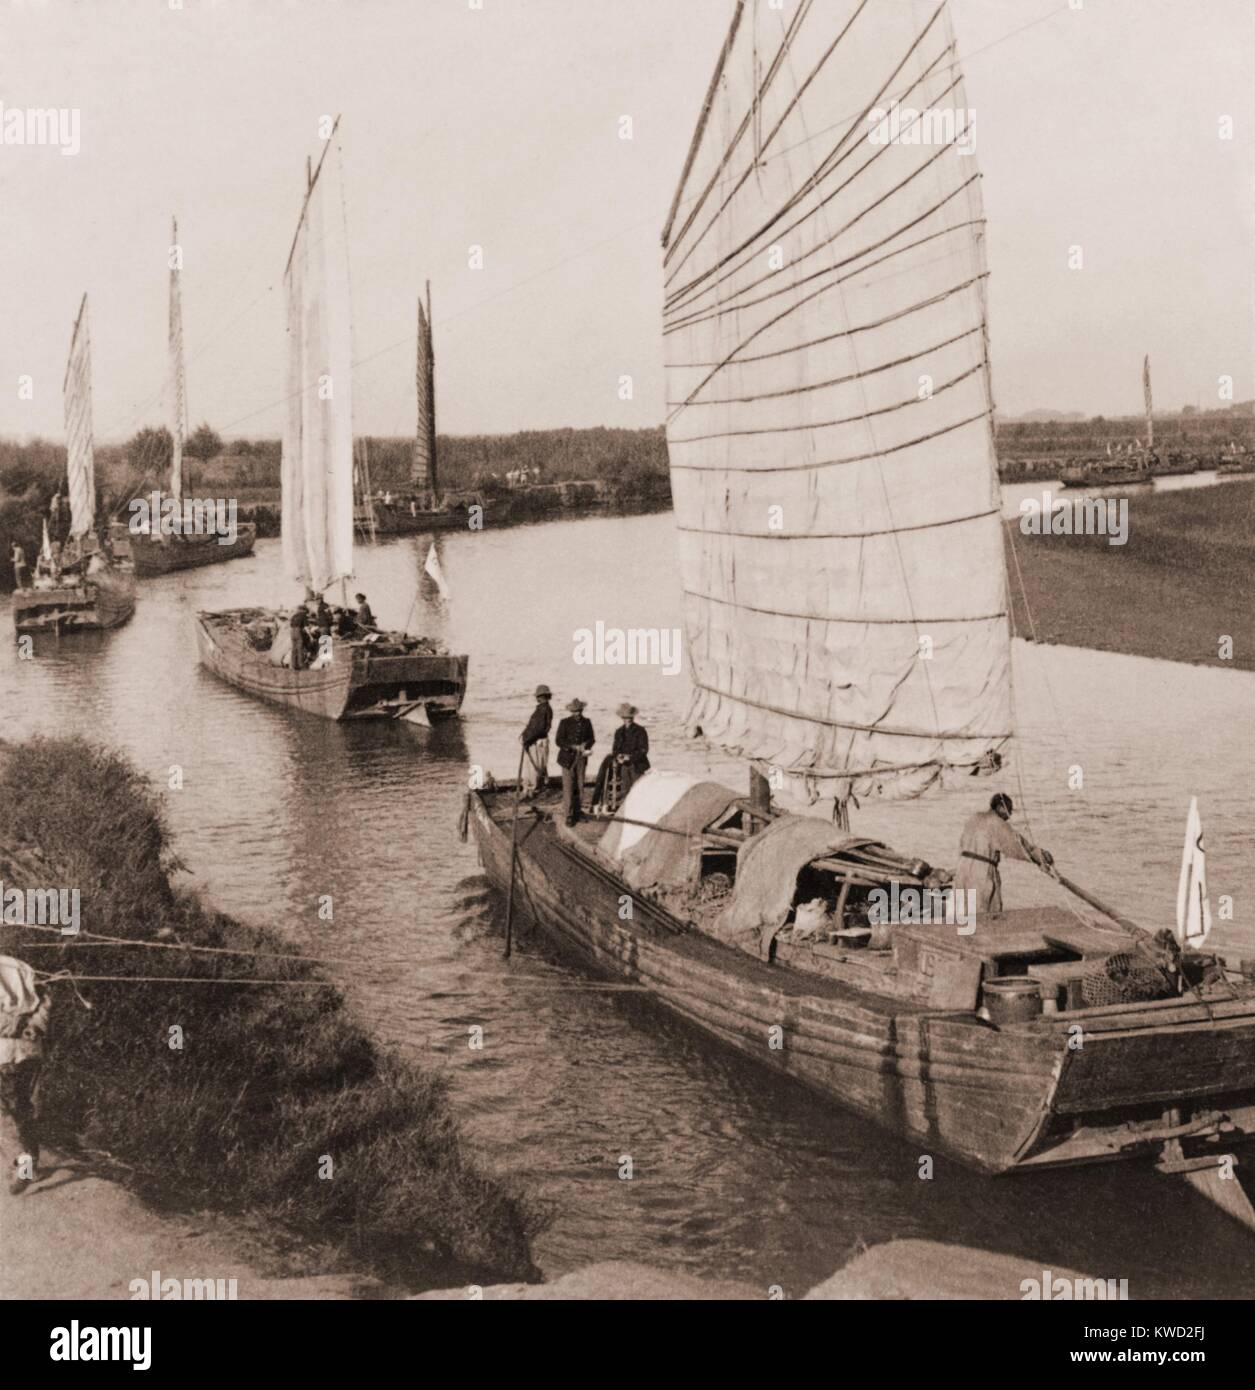 US Army commandeered junks for transport to Beijing by during the Boxer Rebellion, Aug. 1900. The supplies were - Stock Image